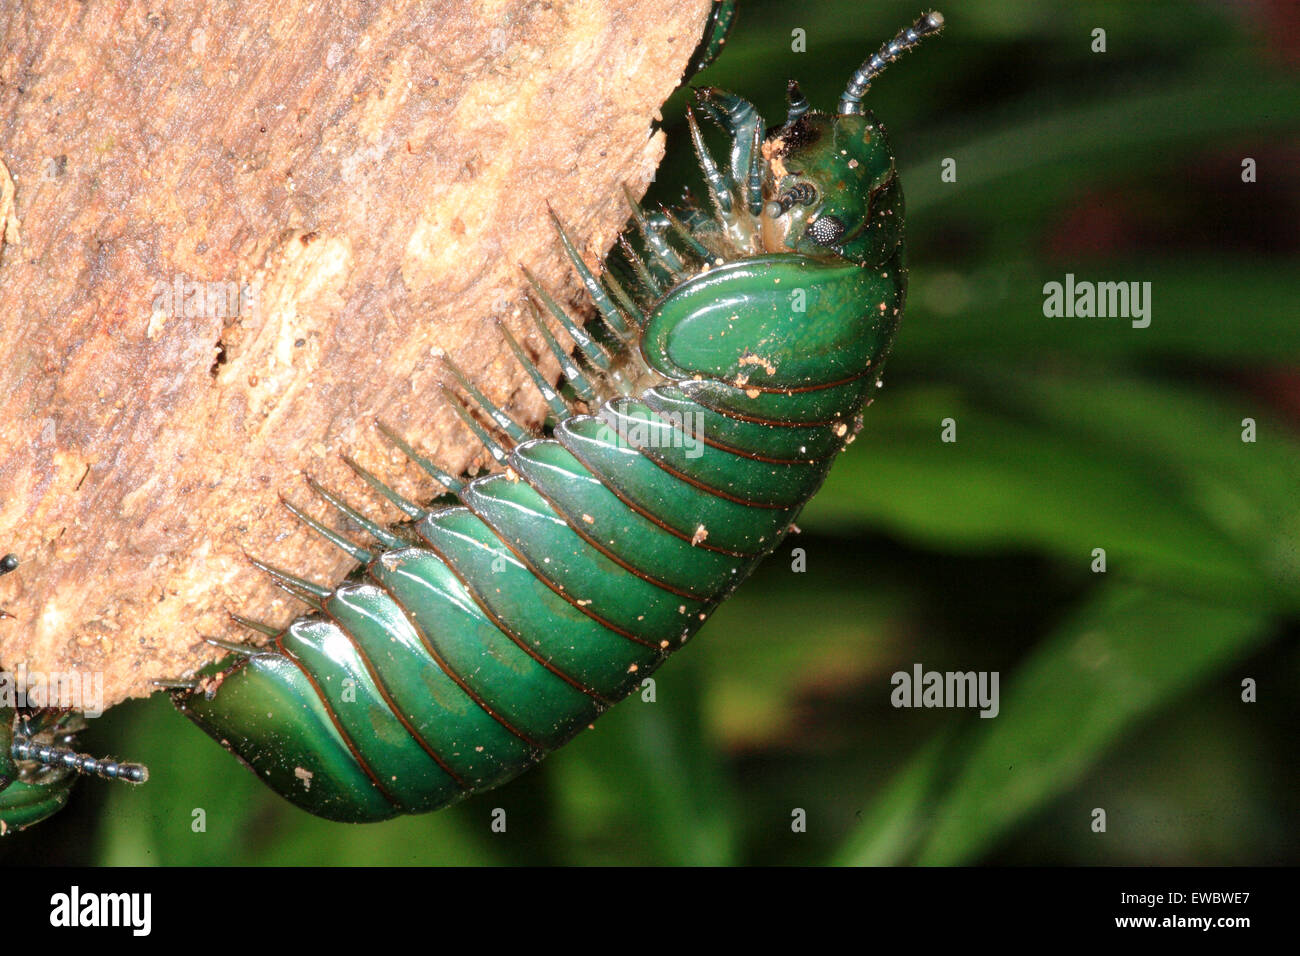 Giant Pill Millipede on hand photo WP01681